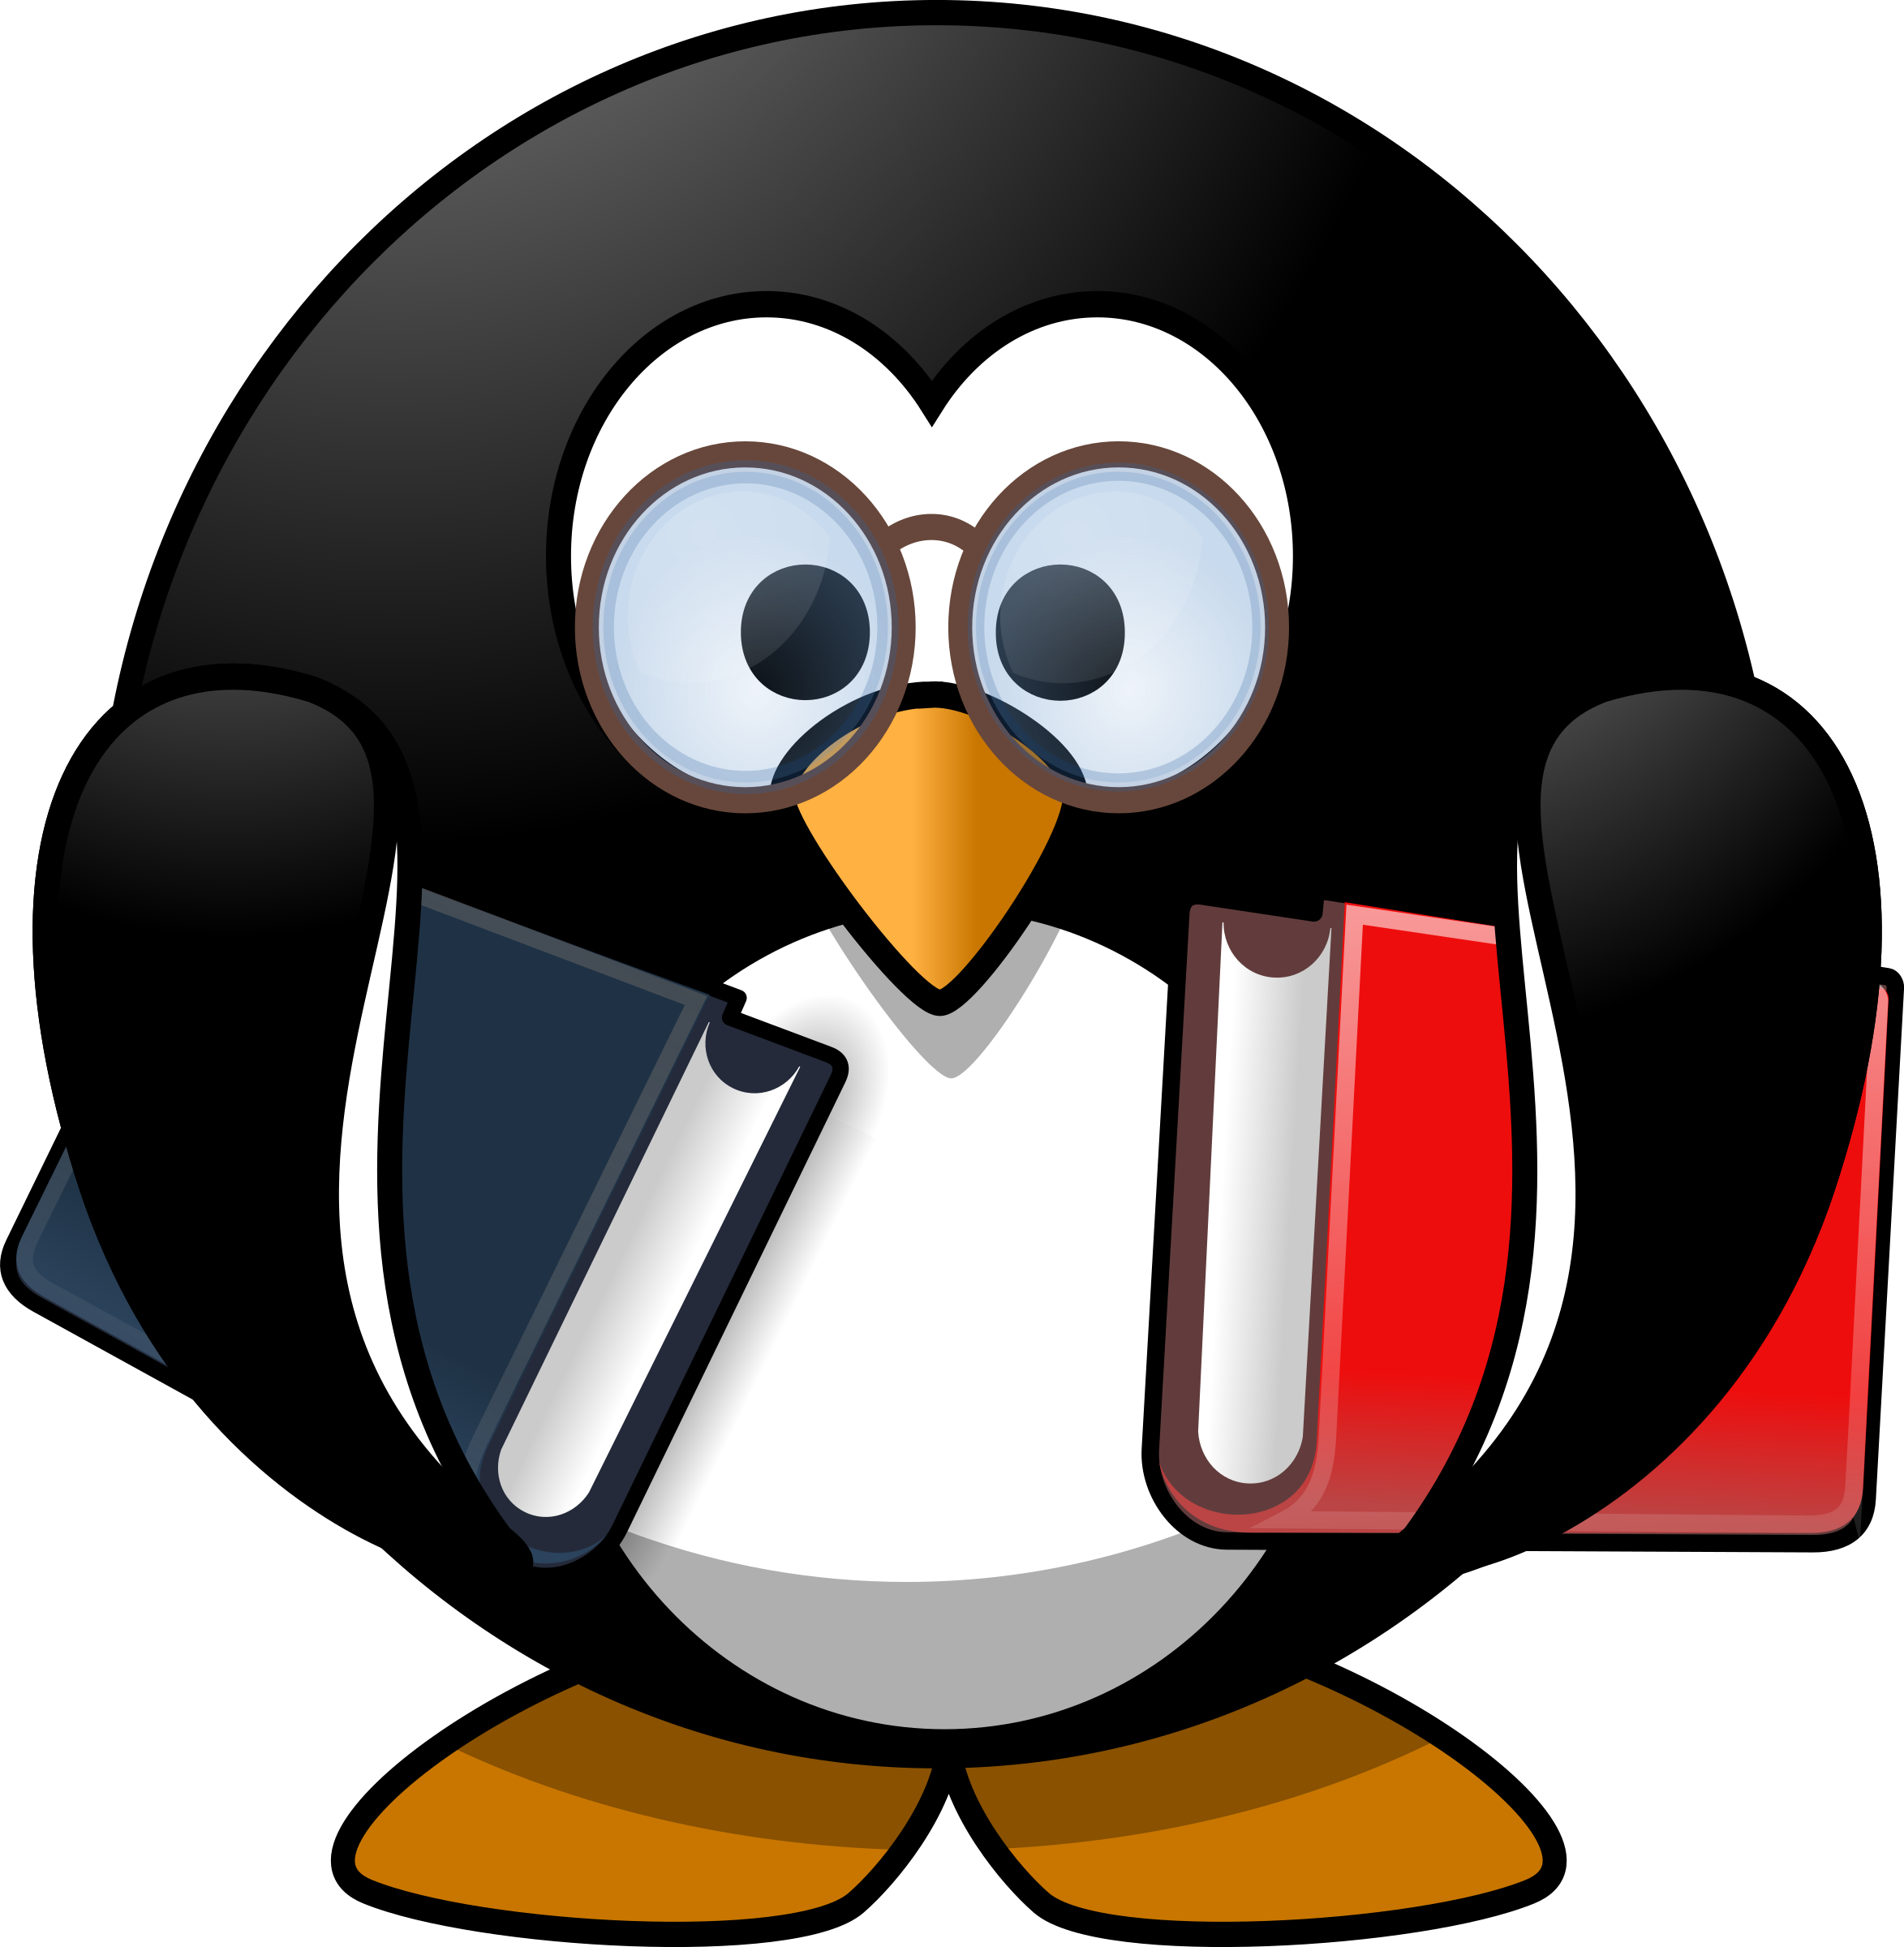 Worm clipart small worm. Bookworm penguin big image